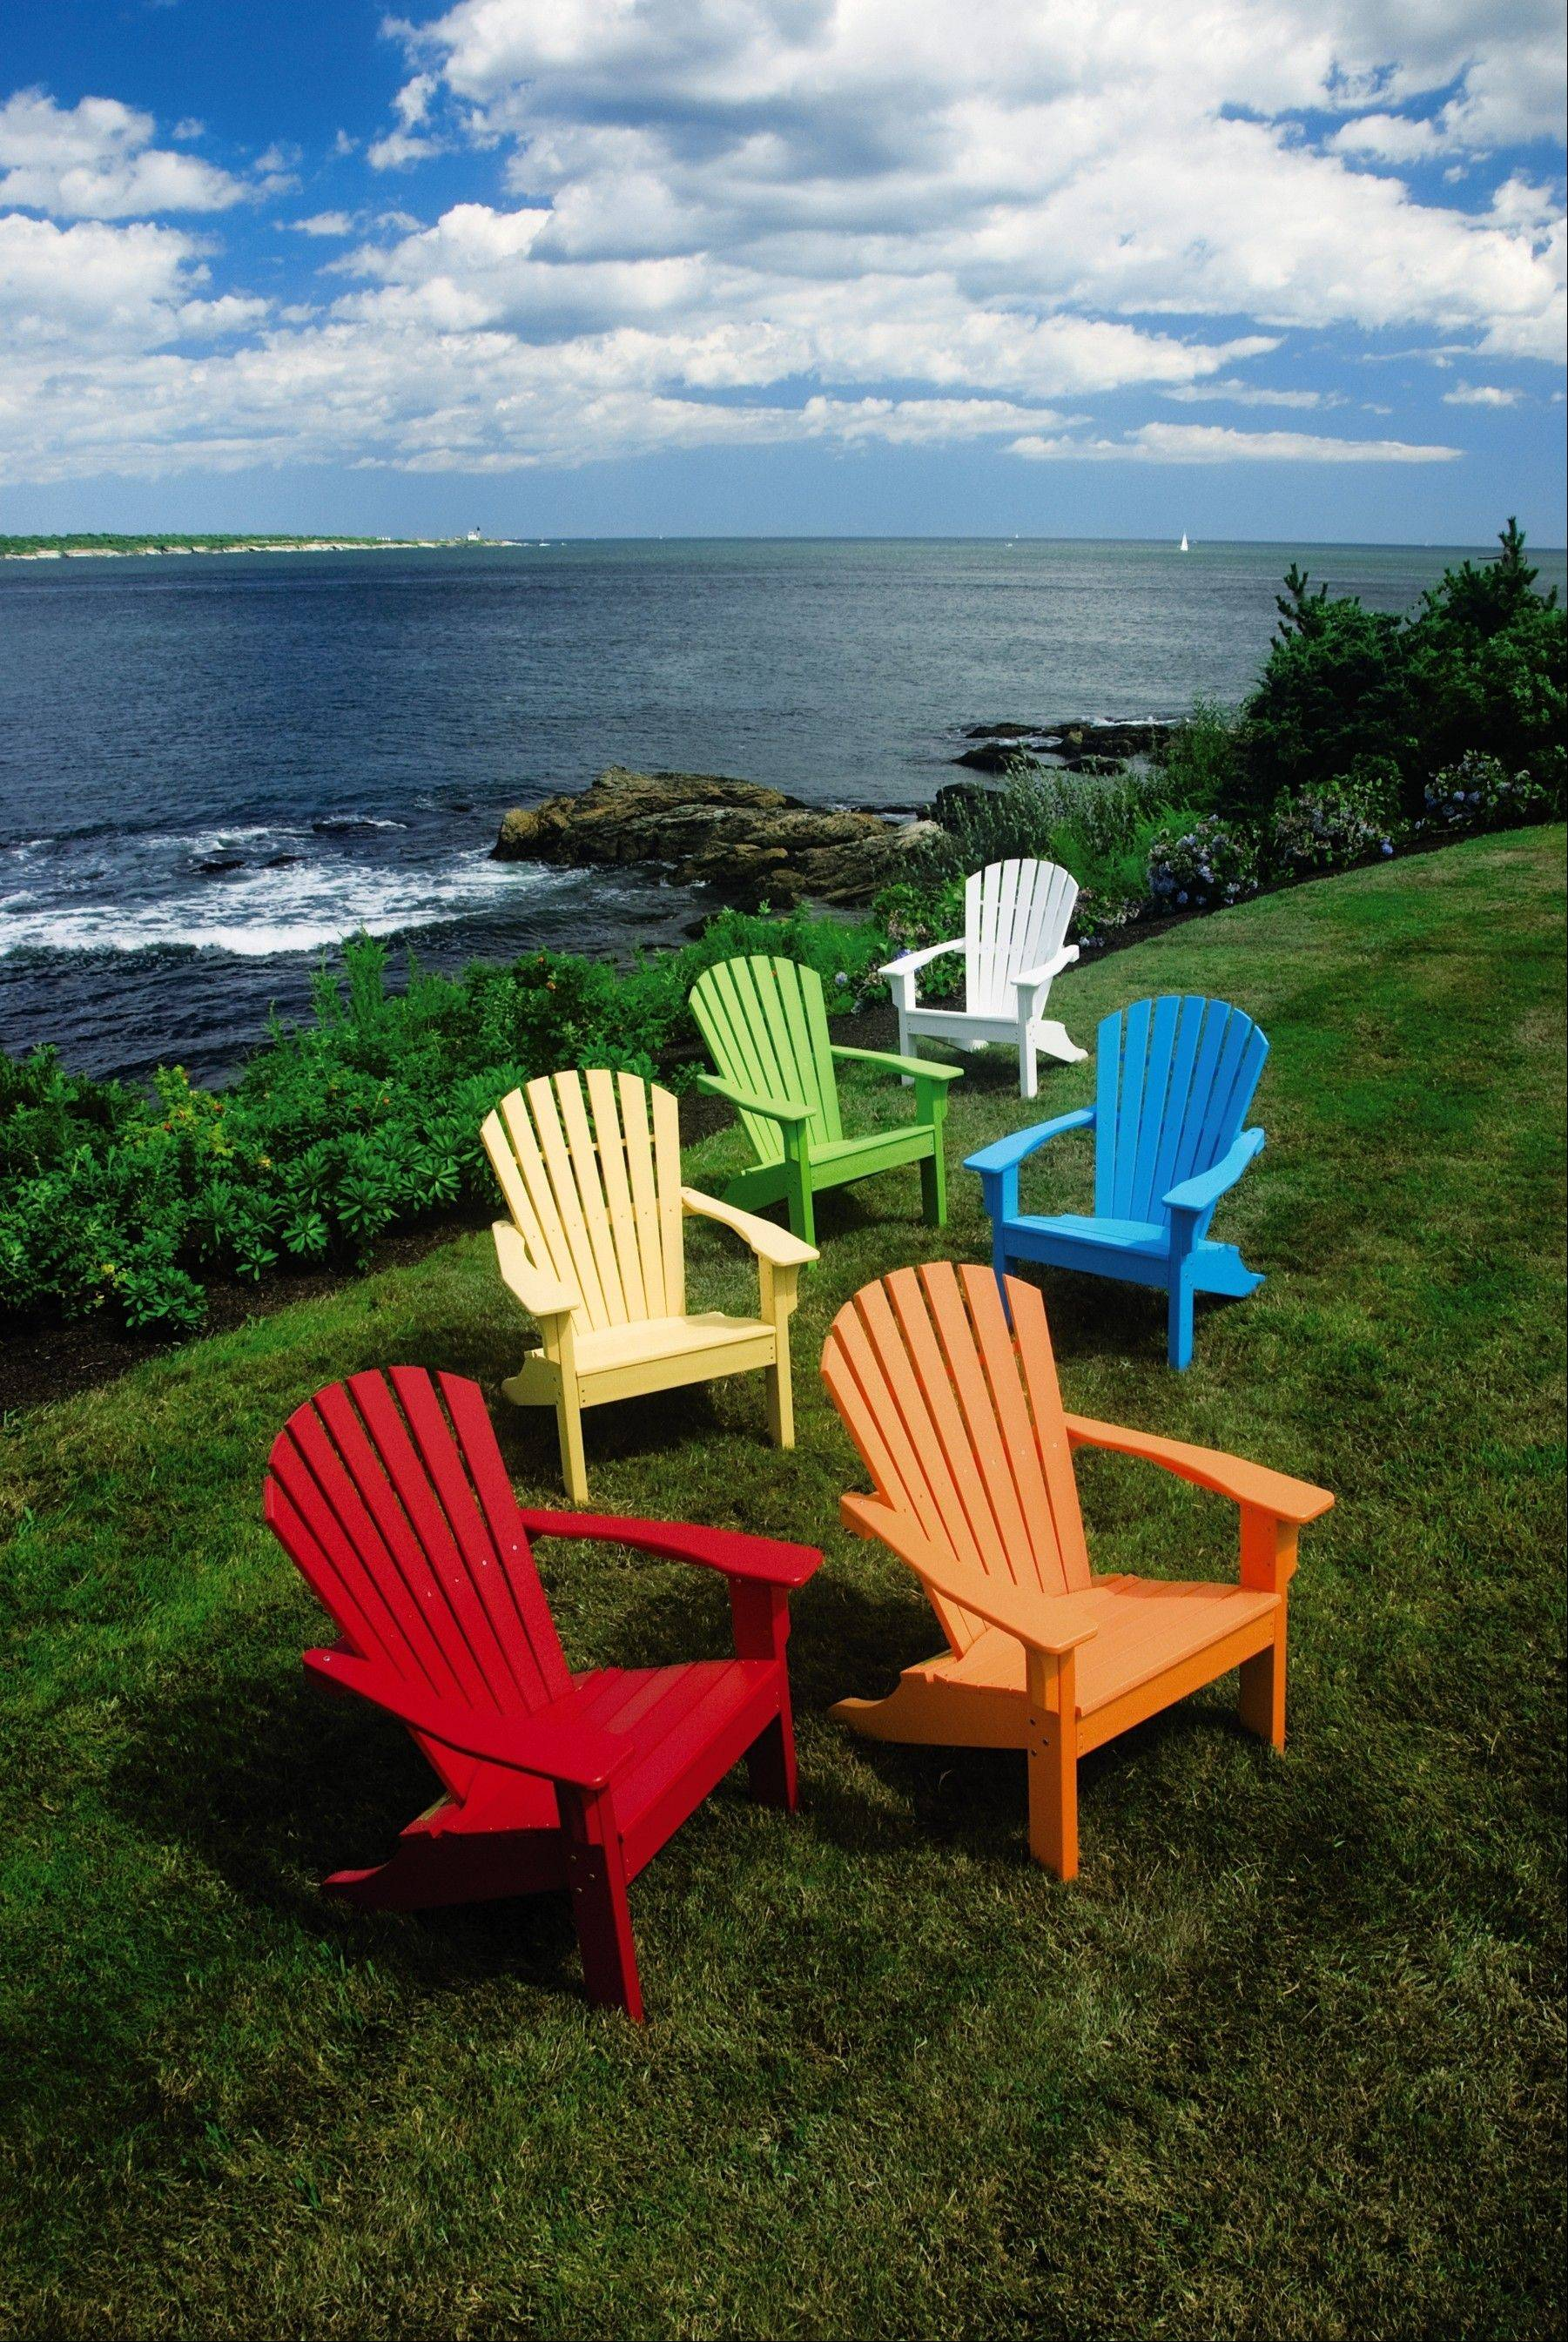 Seaside Casual Furniture offers its Adirondack chairs in six colors, and says if the recycled plastic can stand up to salt air by the sea, it will do well in your backyard.